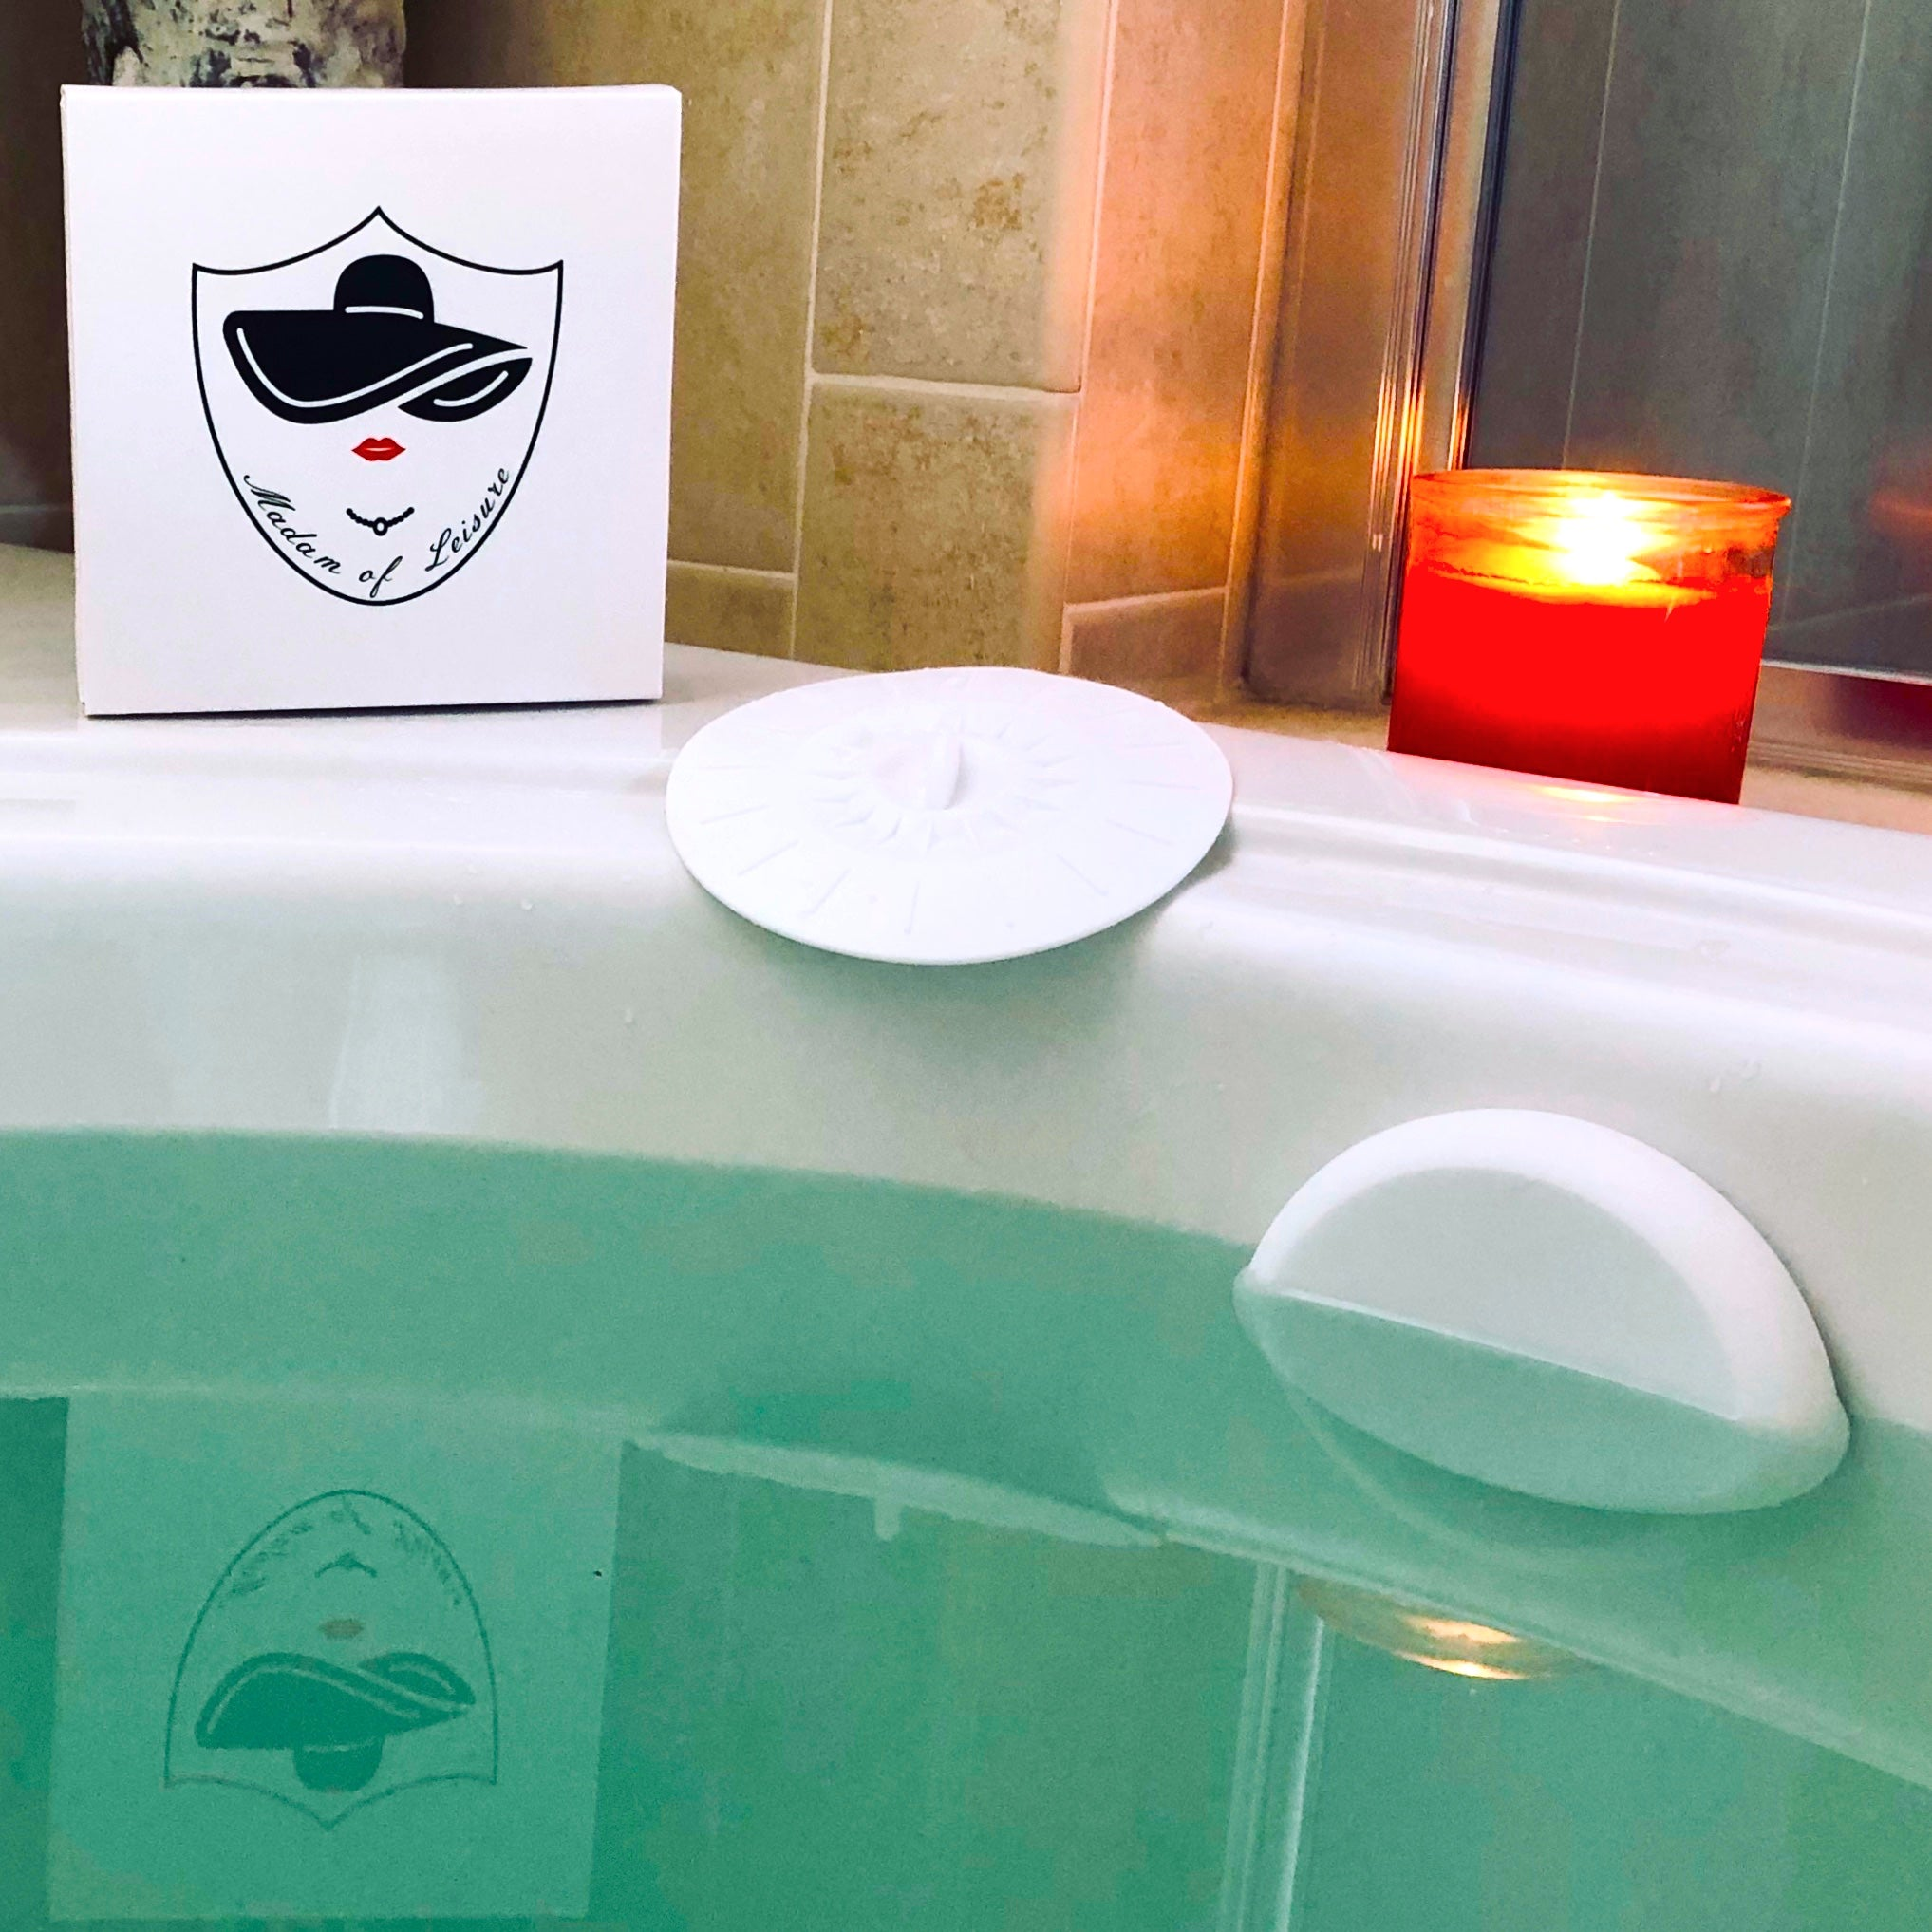 Picture of: Bathtub Overflow Drain Cover And Tub Drain Stopper Leisure Hour Madam Of Leisure Lord Of Leisure